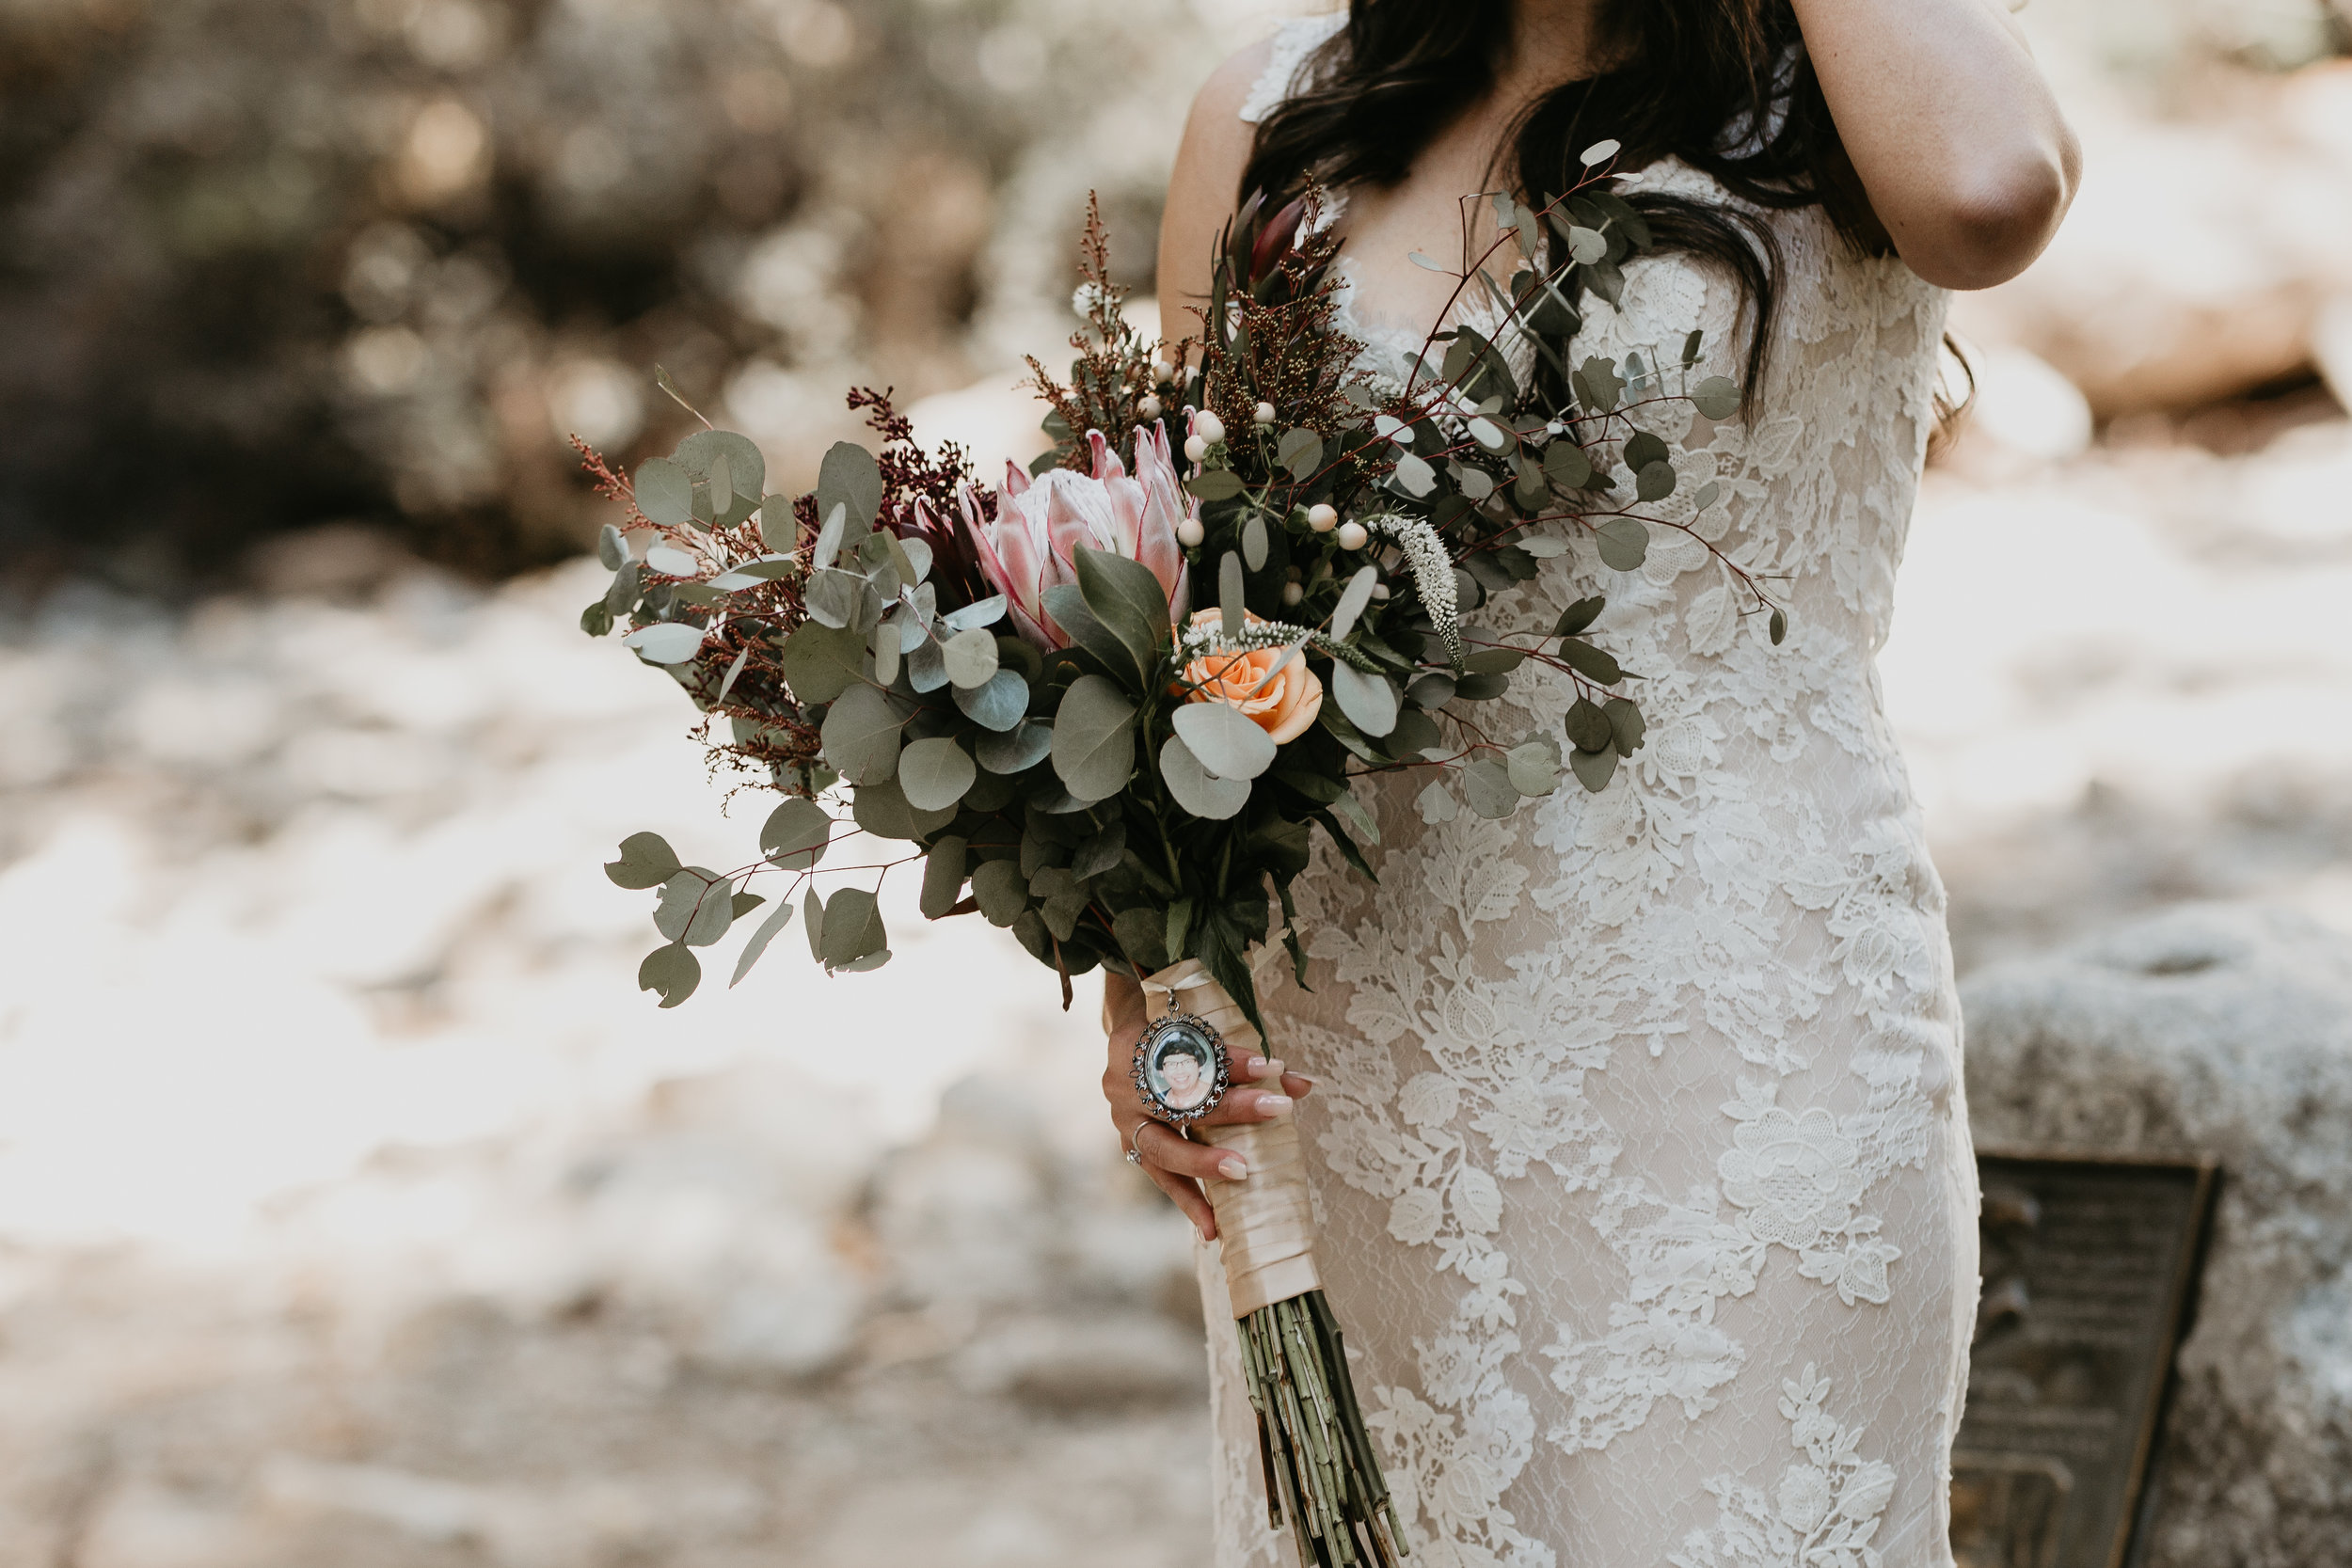 nicole-daacke-photography-intimate-elopement-wedding-yosemite-national-park-california-taft-point-sunset-photos-yosemite-valley-tunnel-view-first-look-sunrise-golden-granite-hiking-adventure-wedding-adventurous-elopement-photographer-53.jpg